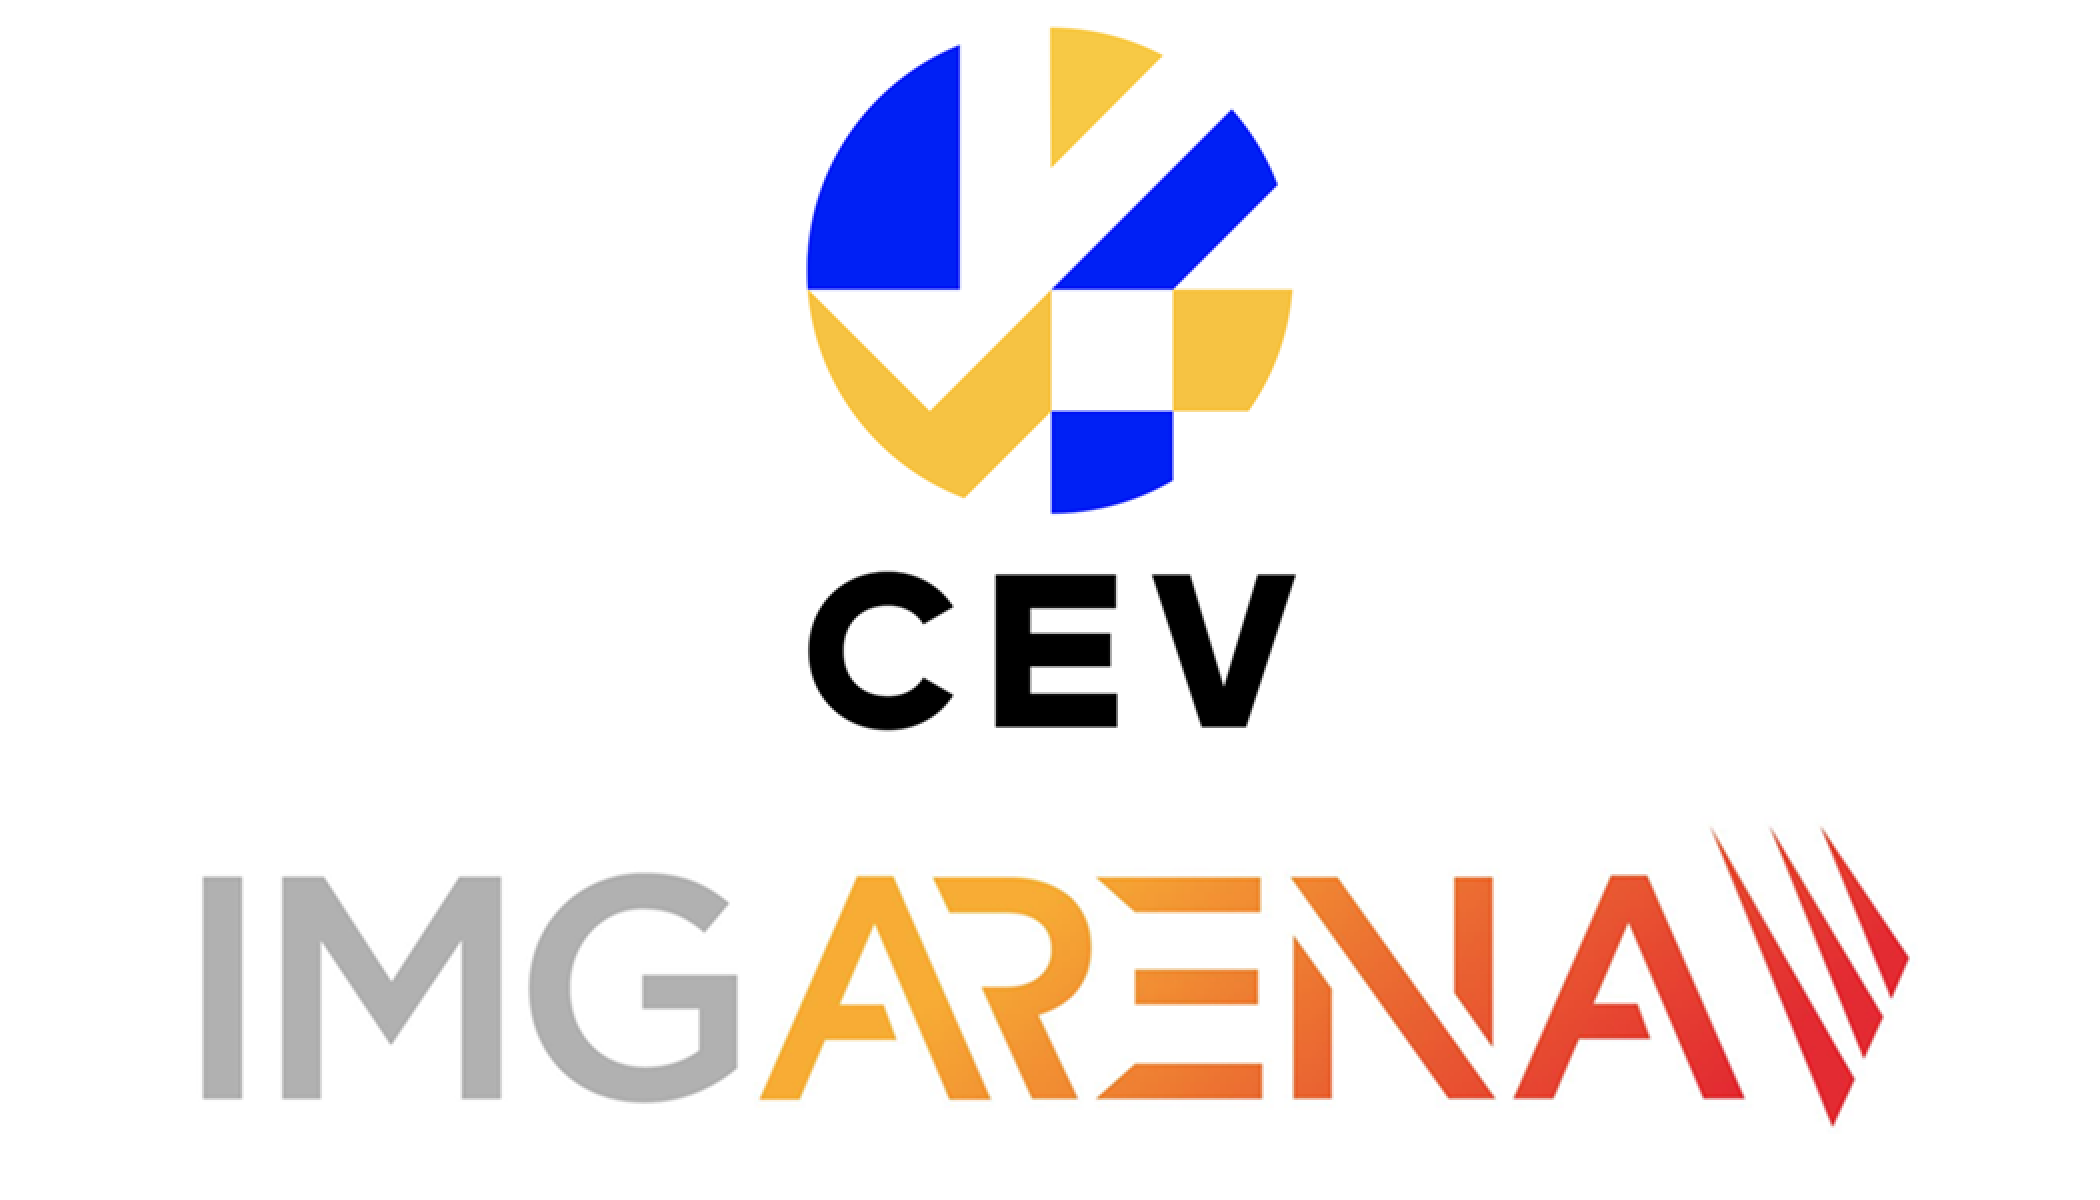 IMG ARENA Scores Long Term Partnership With European Volleyball ...